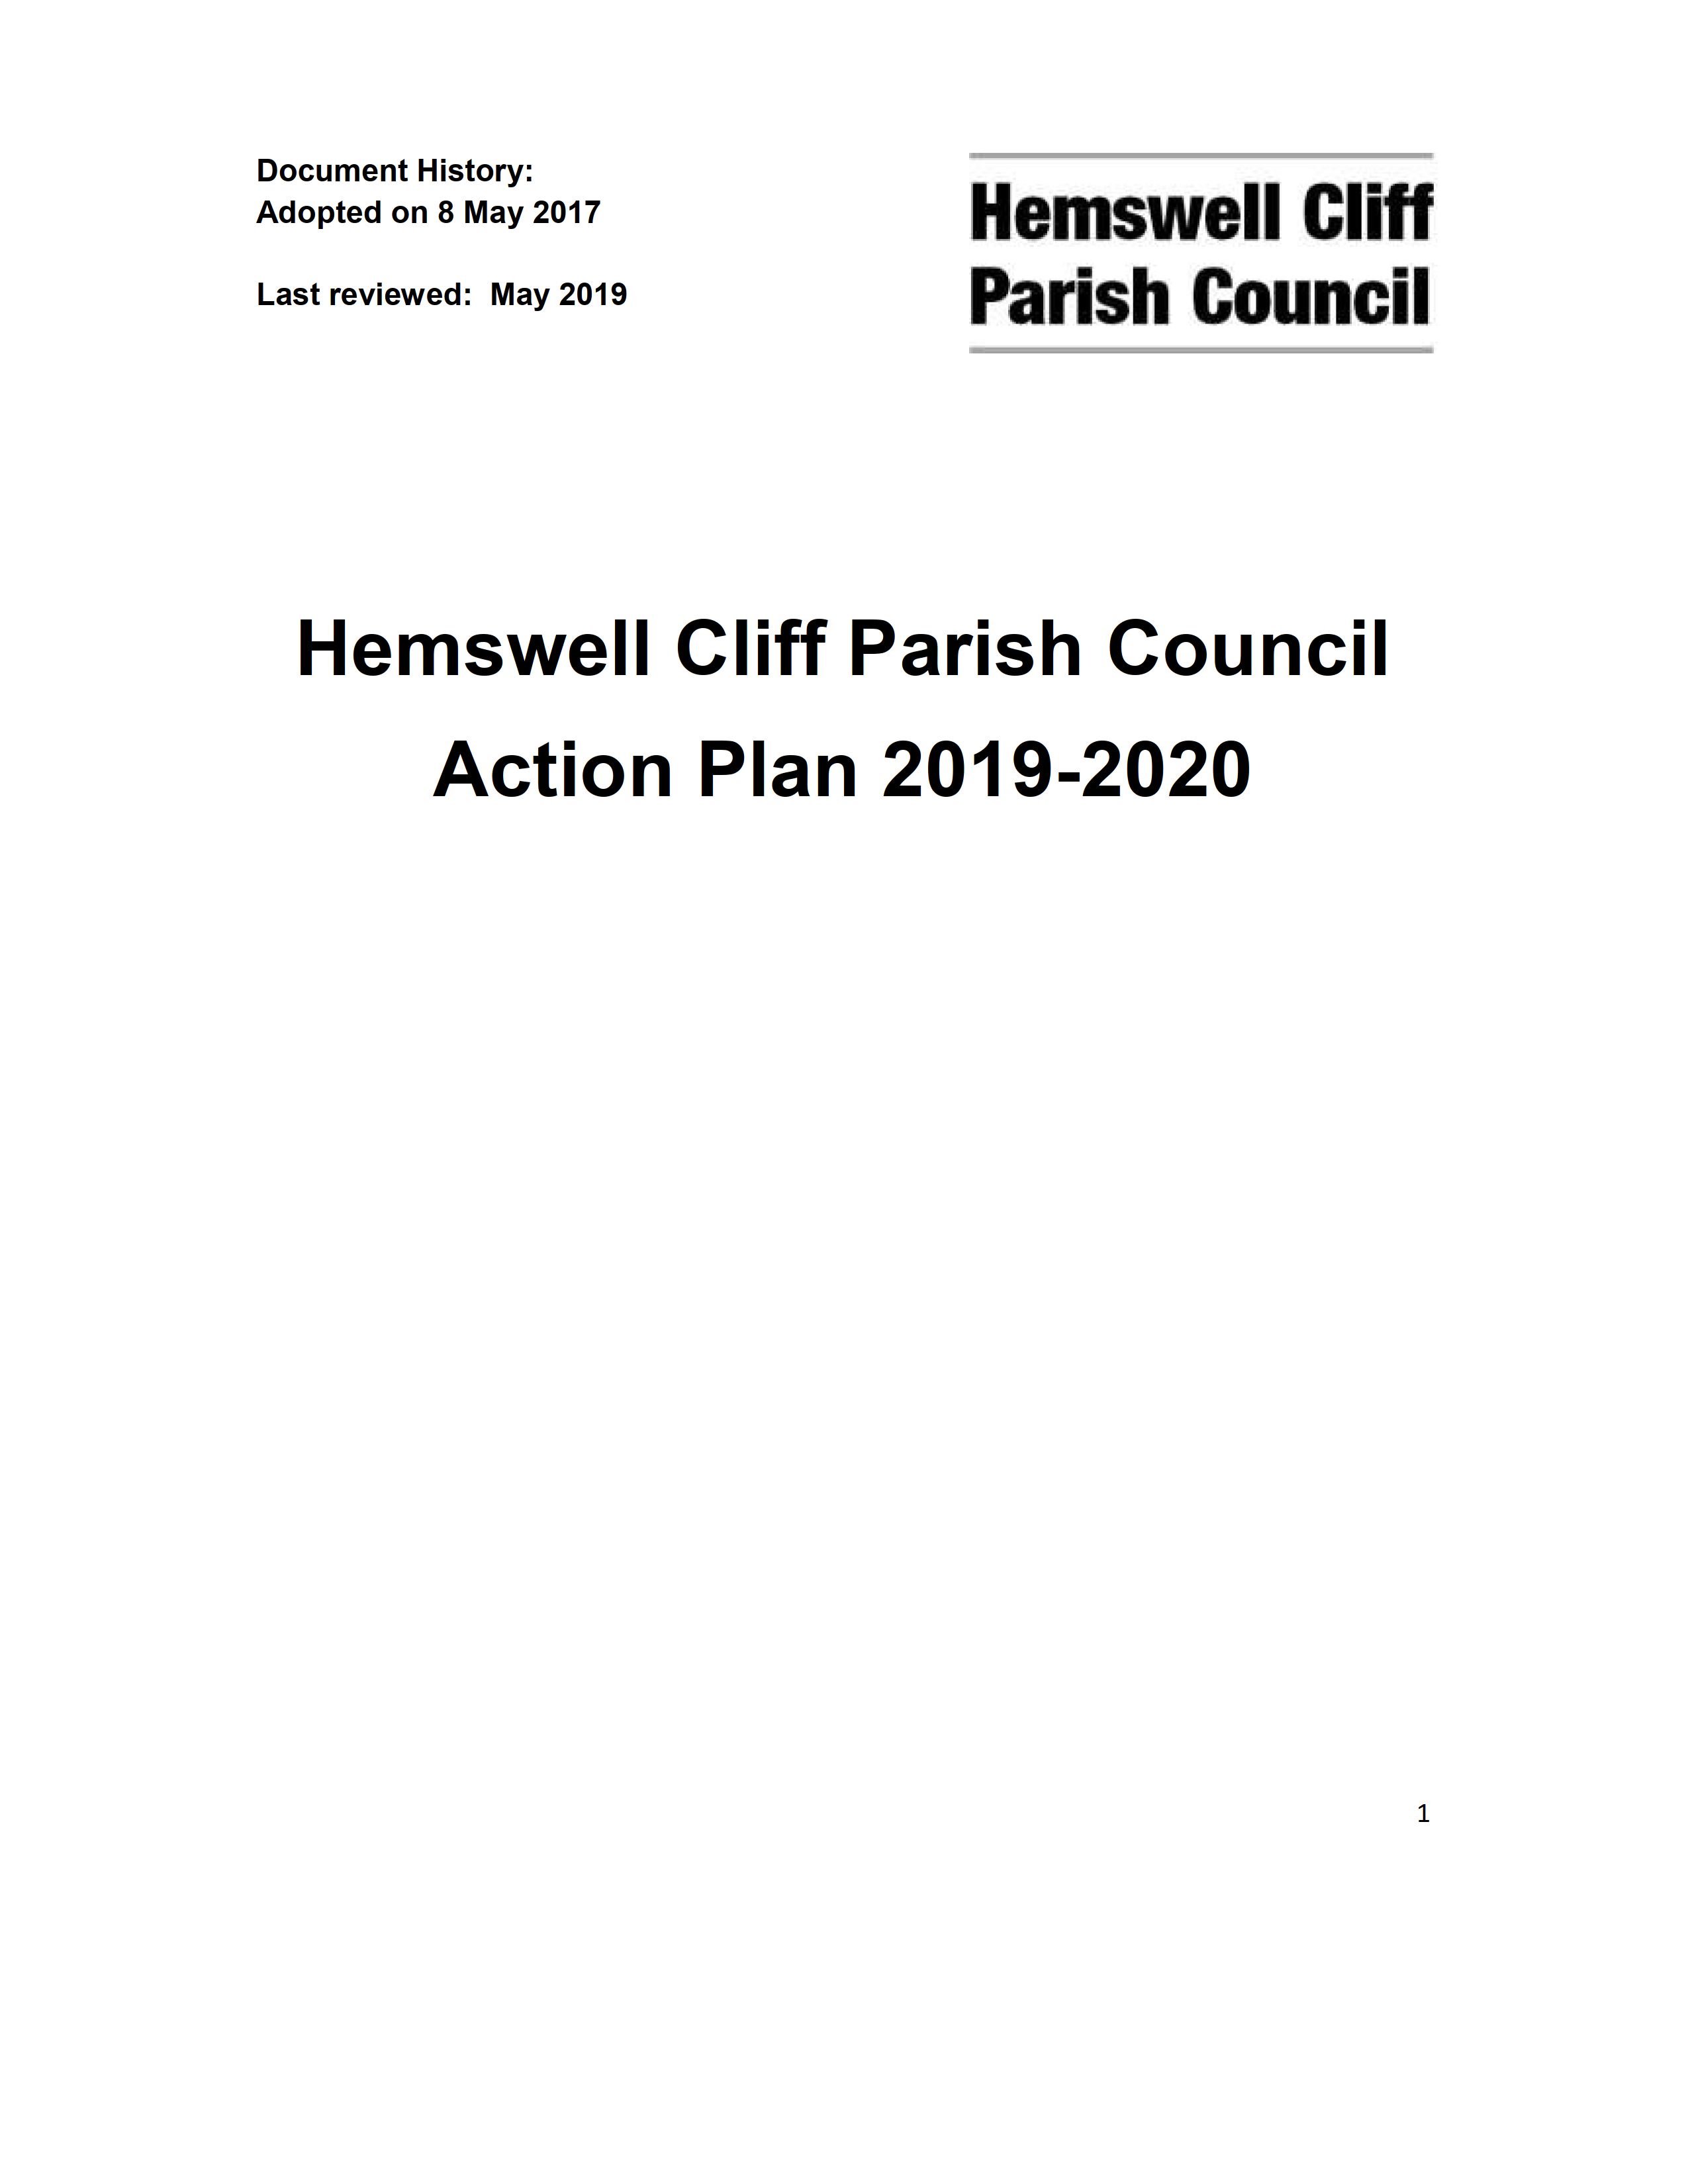 1920HCPC._Action_Plan1.png